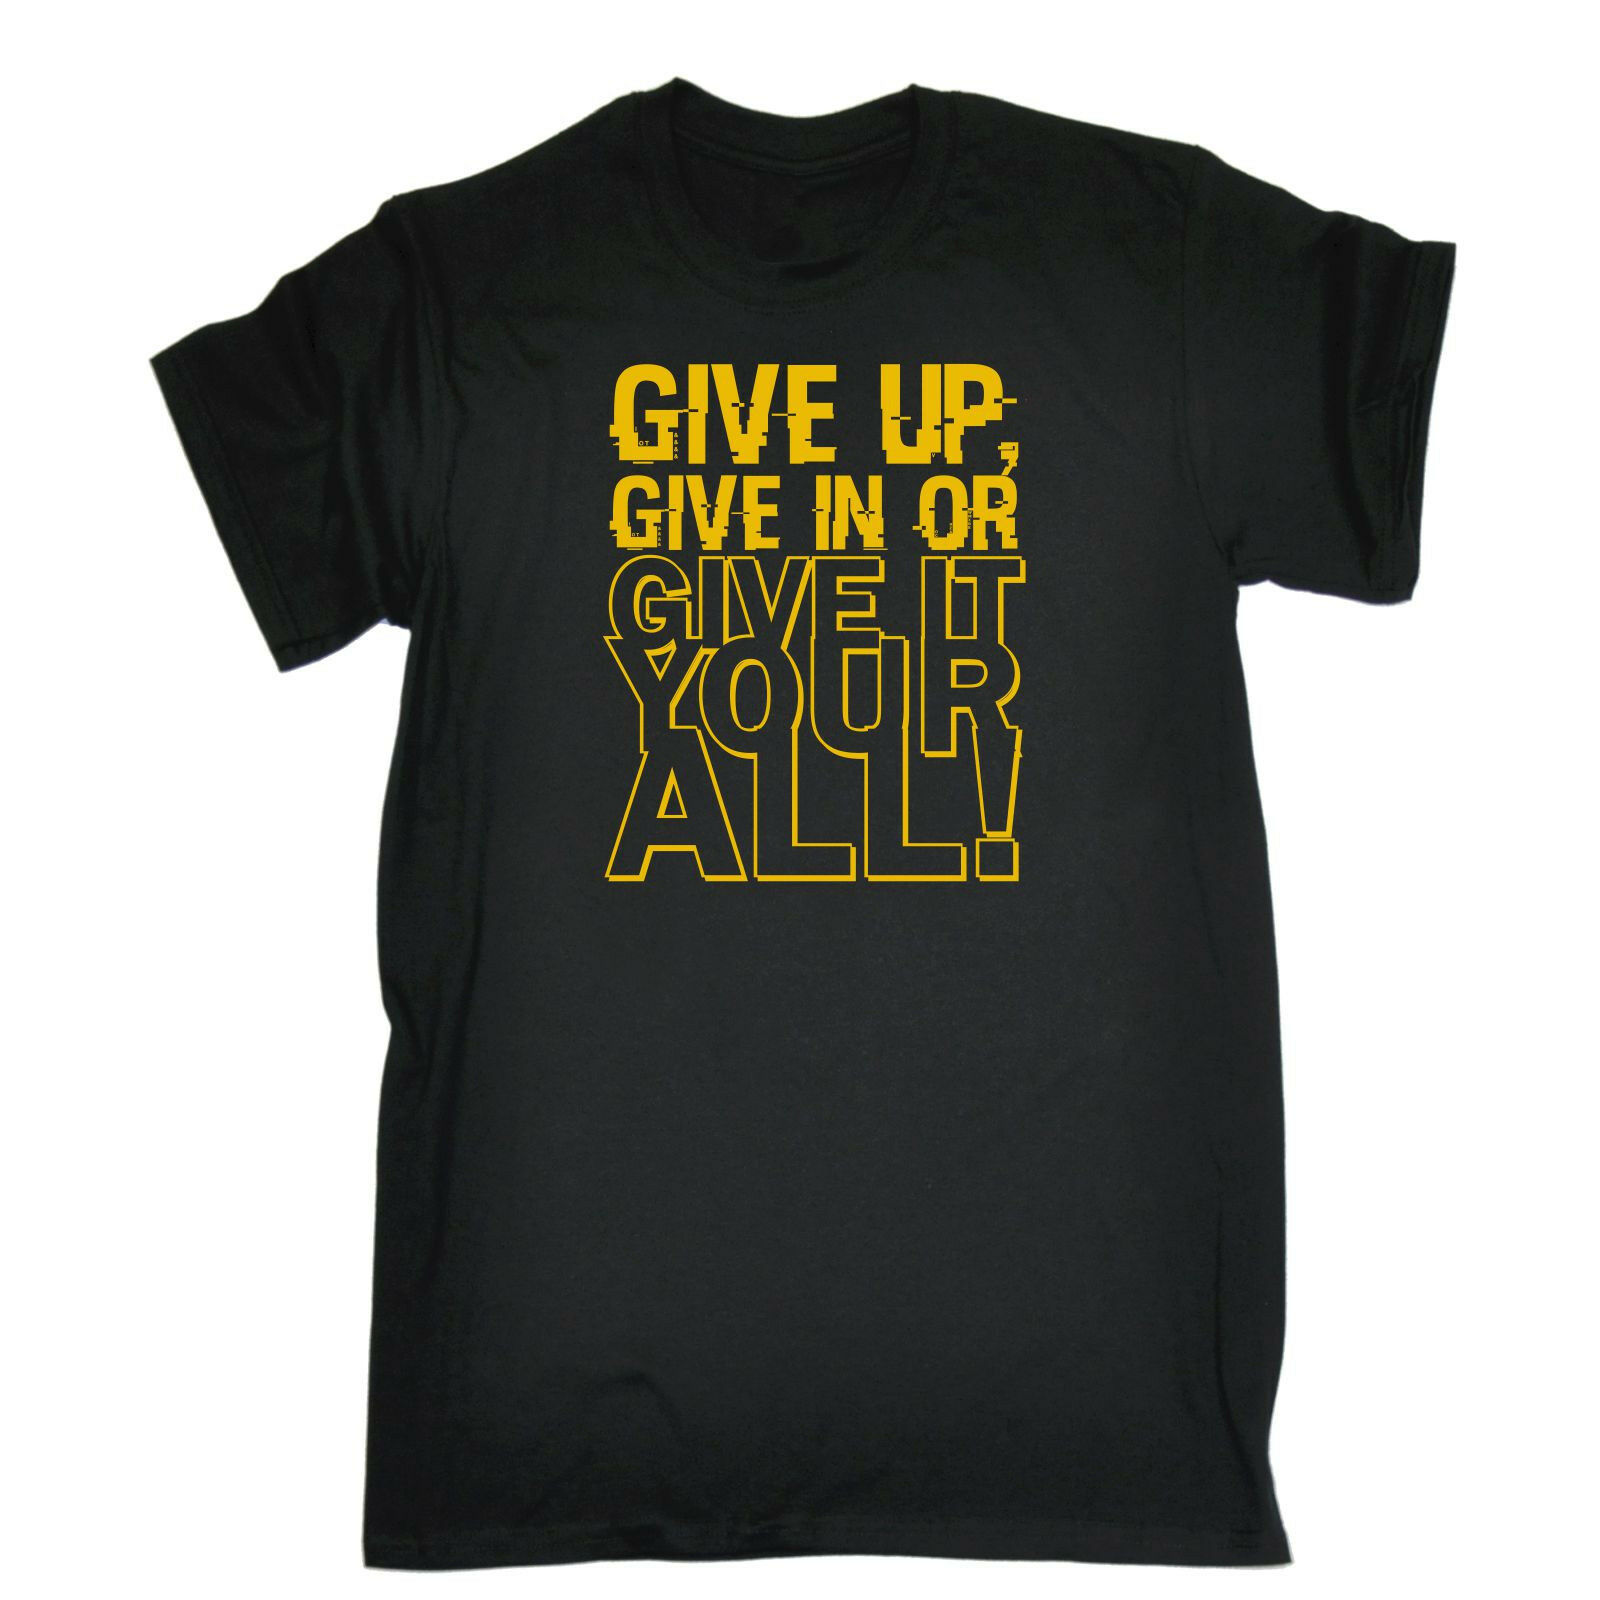 Give Up Give It All T-SHIRT Motivation Training Tee Top Funny birthday gift image